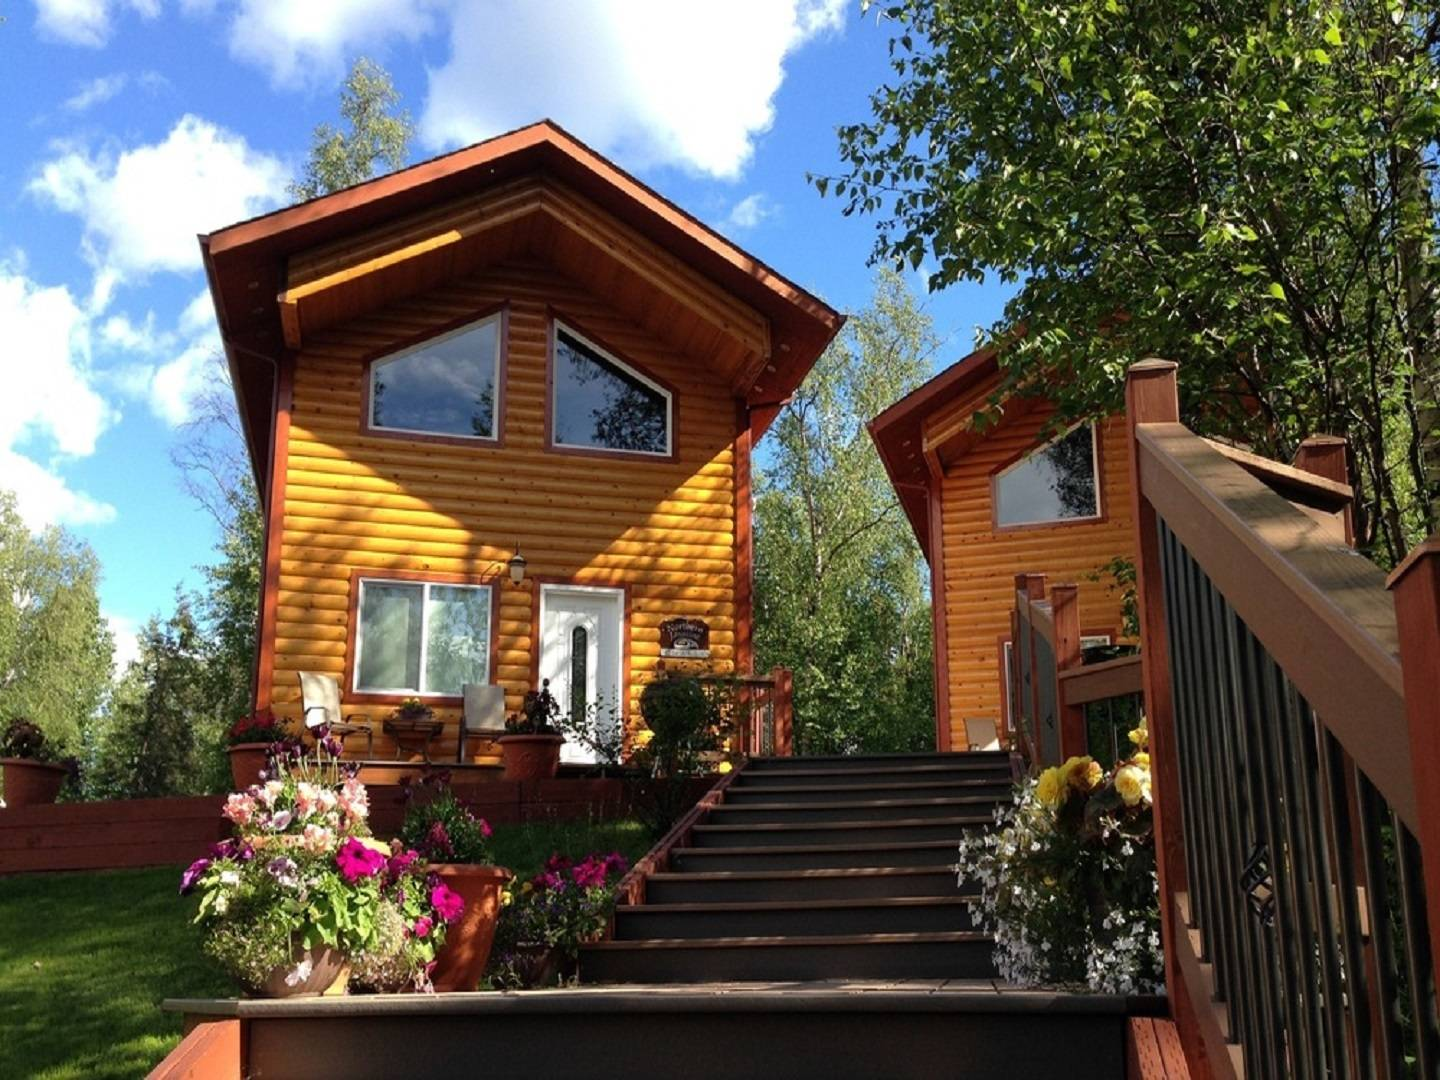 A house with bushes in front of a building at Alaska Adventure Unlimited Chalets.